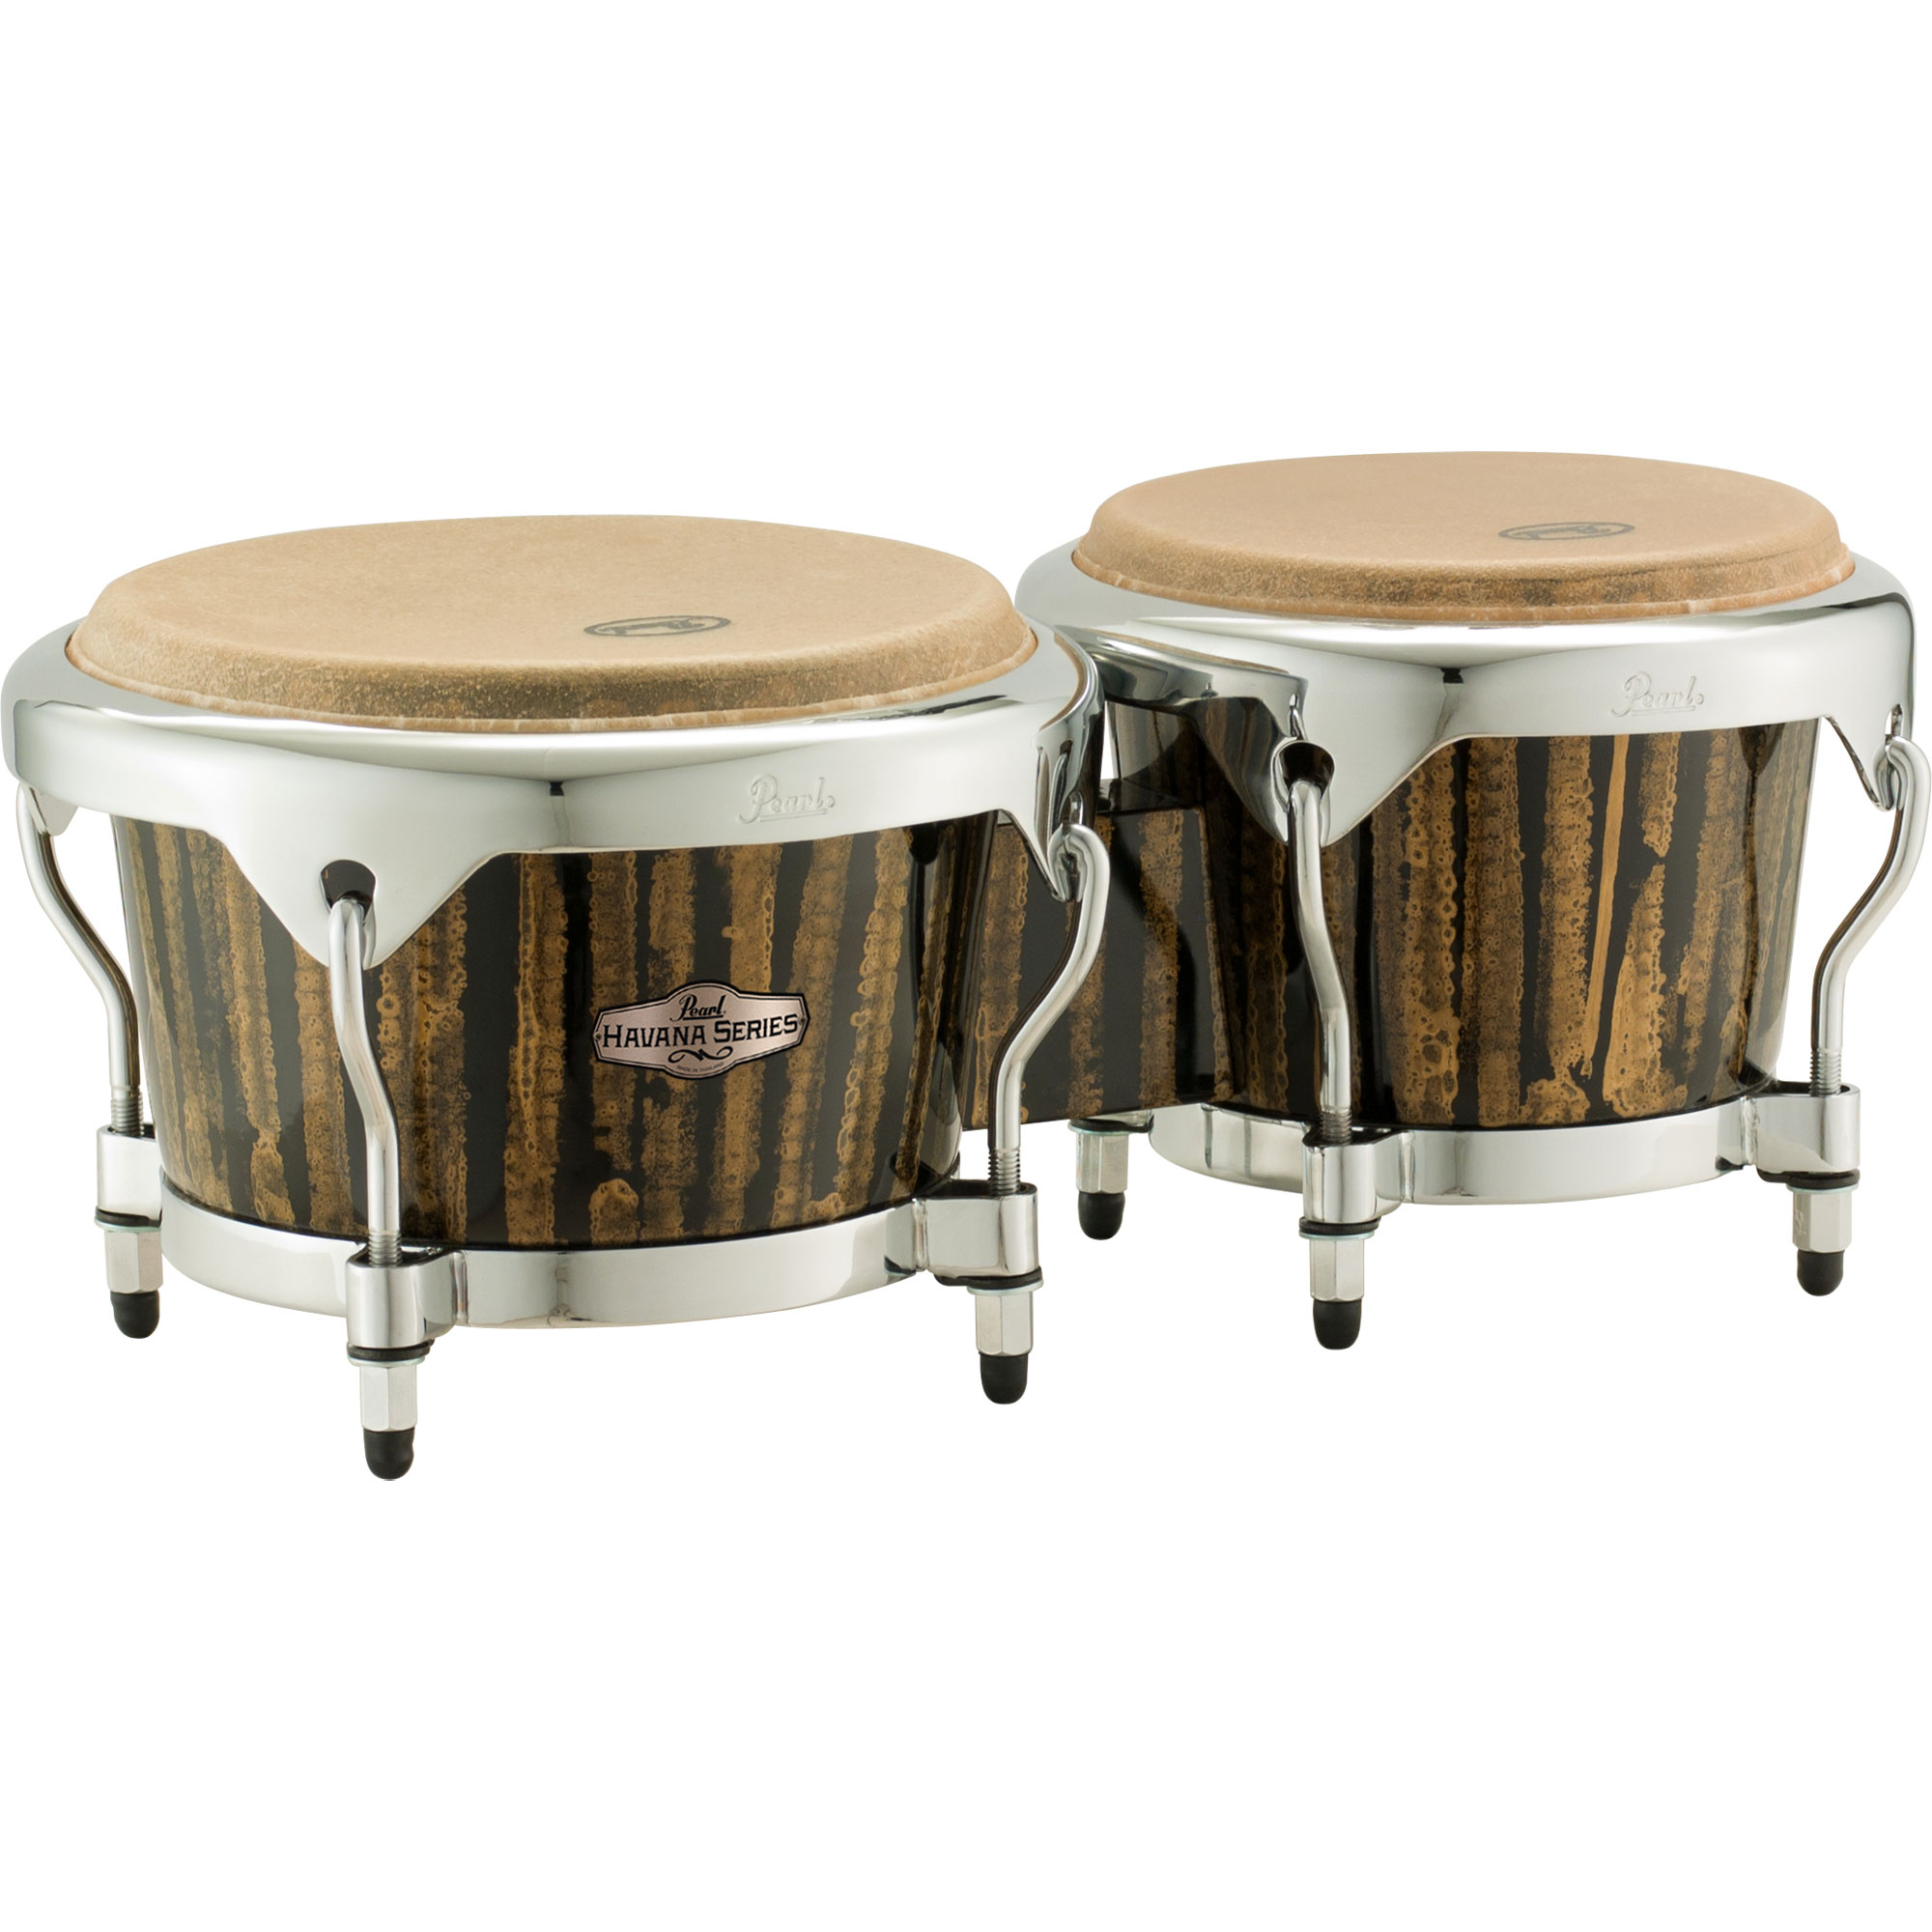 "Pearl 7"" & 9"" Havana Series Fiberglass Bongos in Liquid Gold with Chrome Hardware"